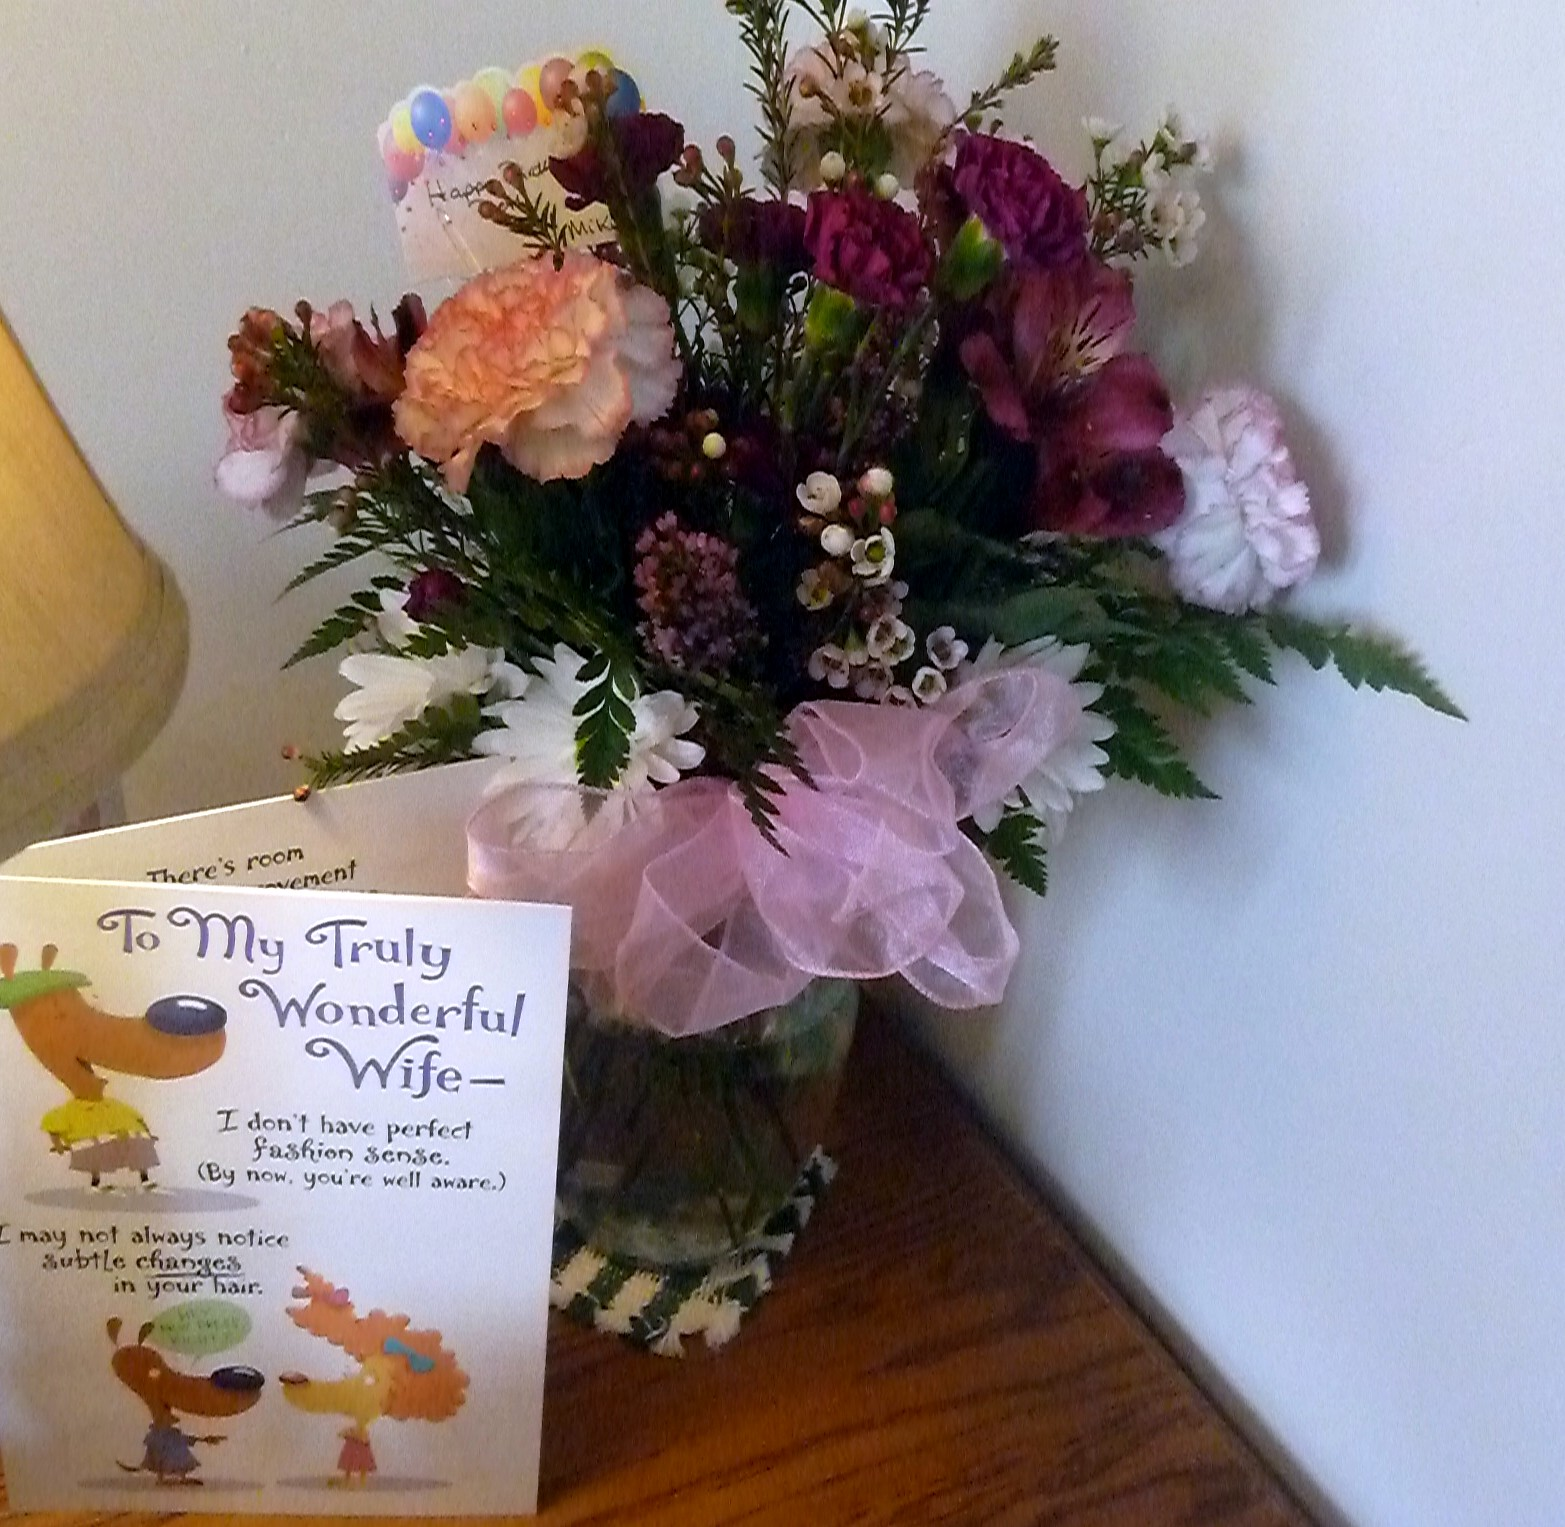 B. Meandering: My Birthday Flowers Share The Love